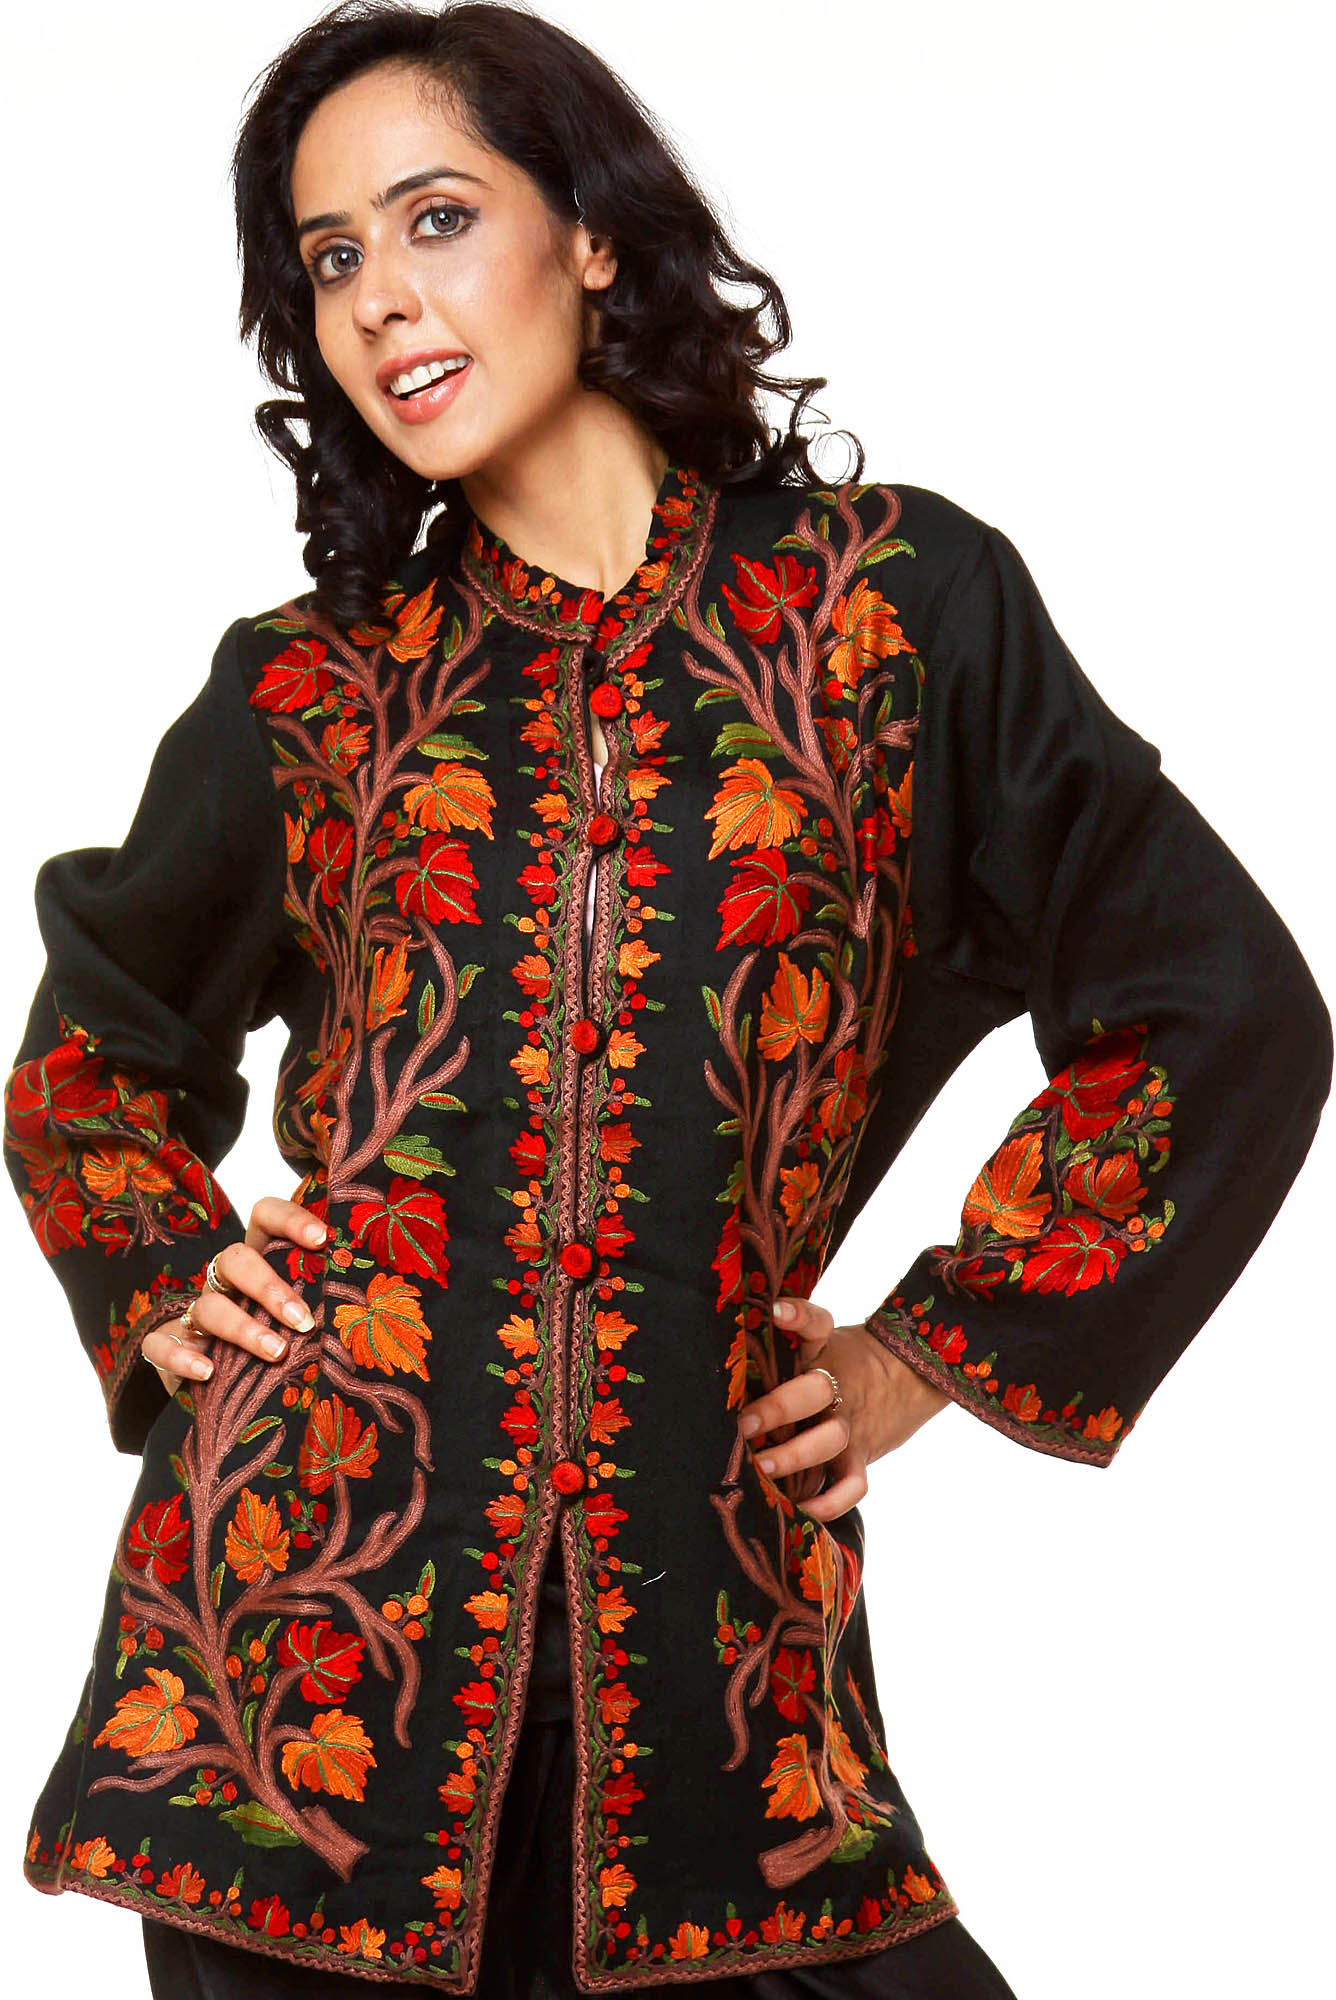 Black kashmiri jacket with hand embroidered tree of life